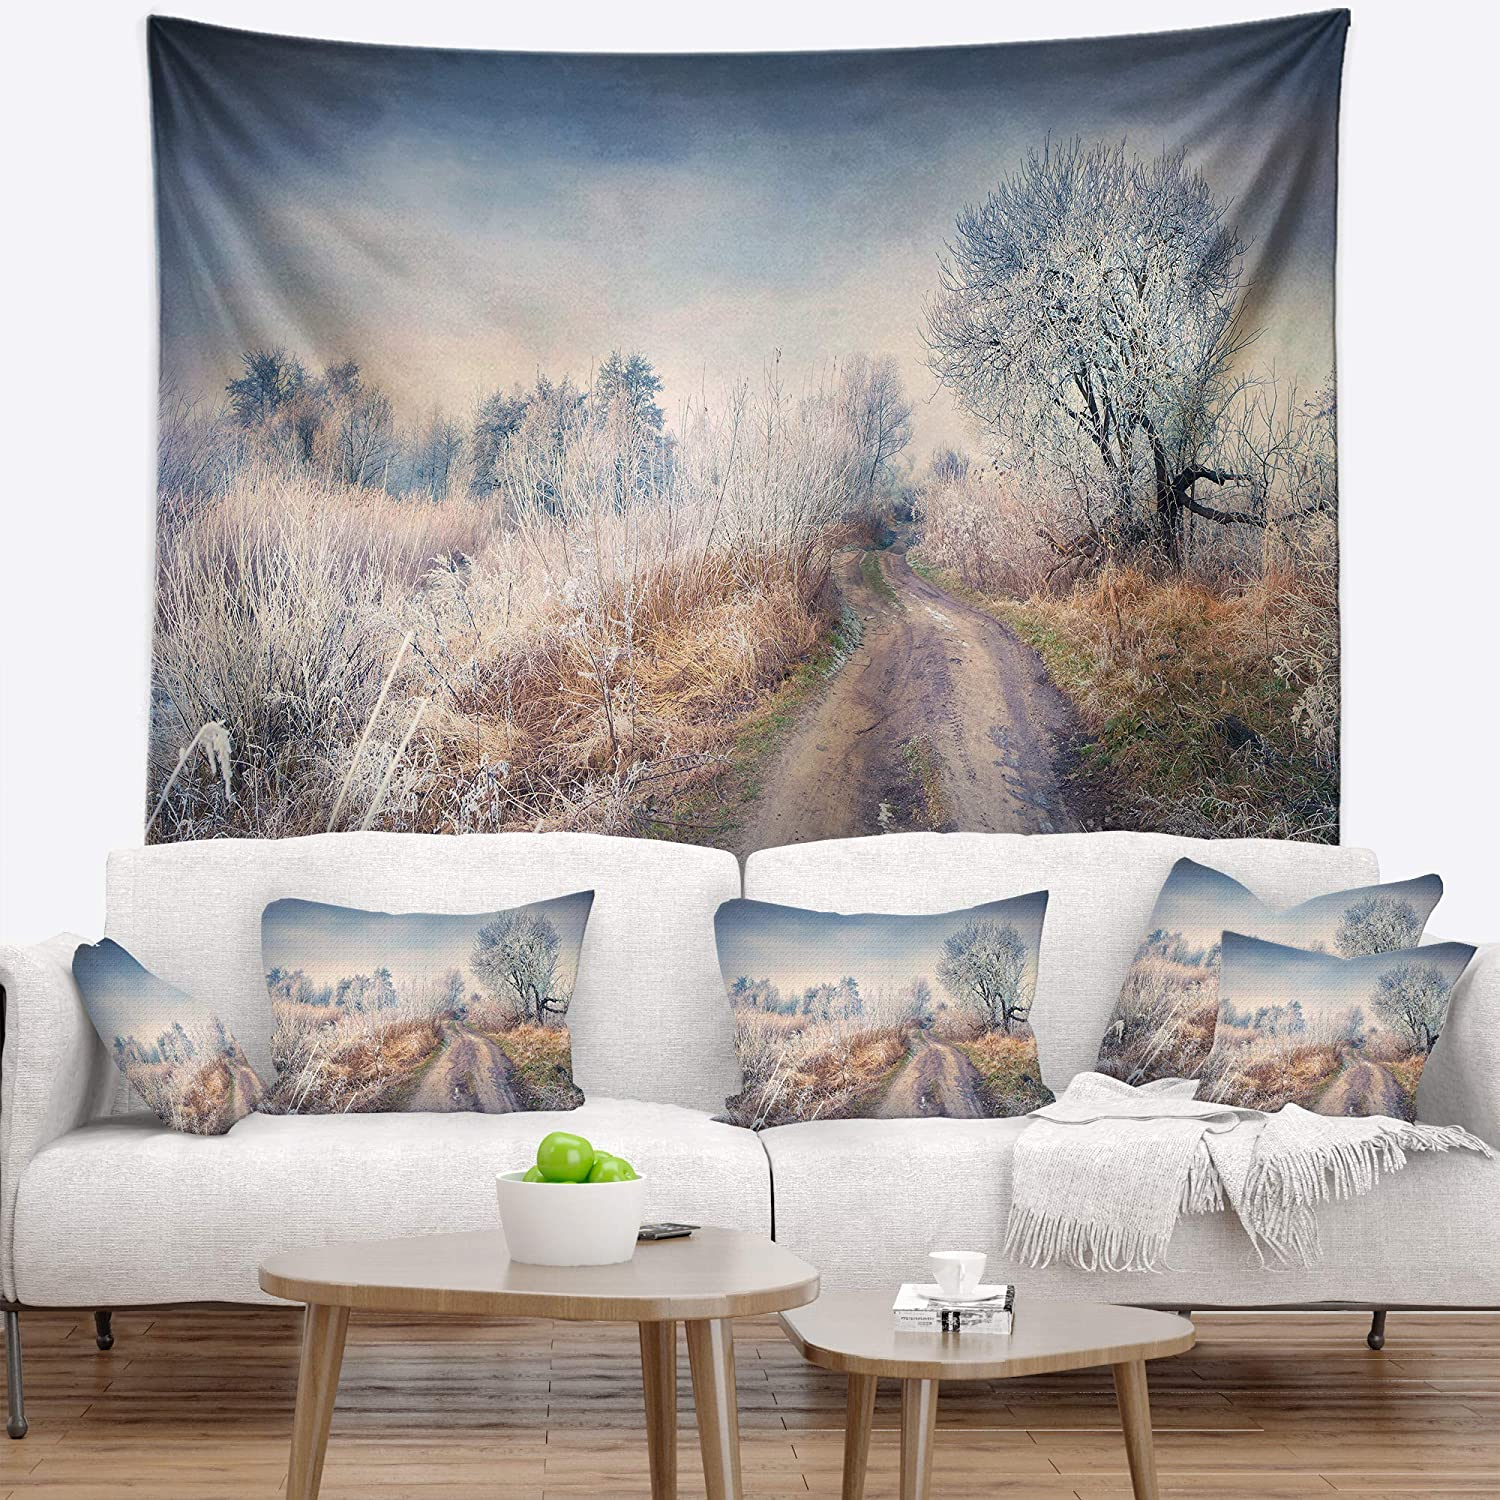 Designart TAP9058-60-50 ' First Frost in Forest' Landscape Photography Blanket Décor Art for Home and Office Wall Tapestry Large: 60 in. x 50 in. Created On Lightweight Polyester Fabric